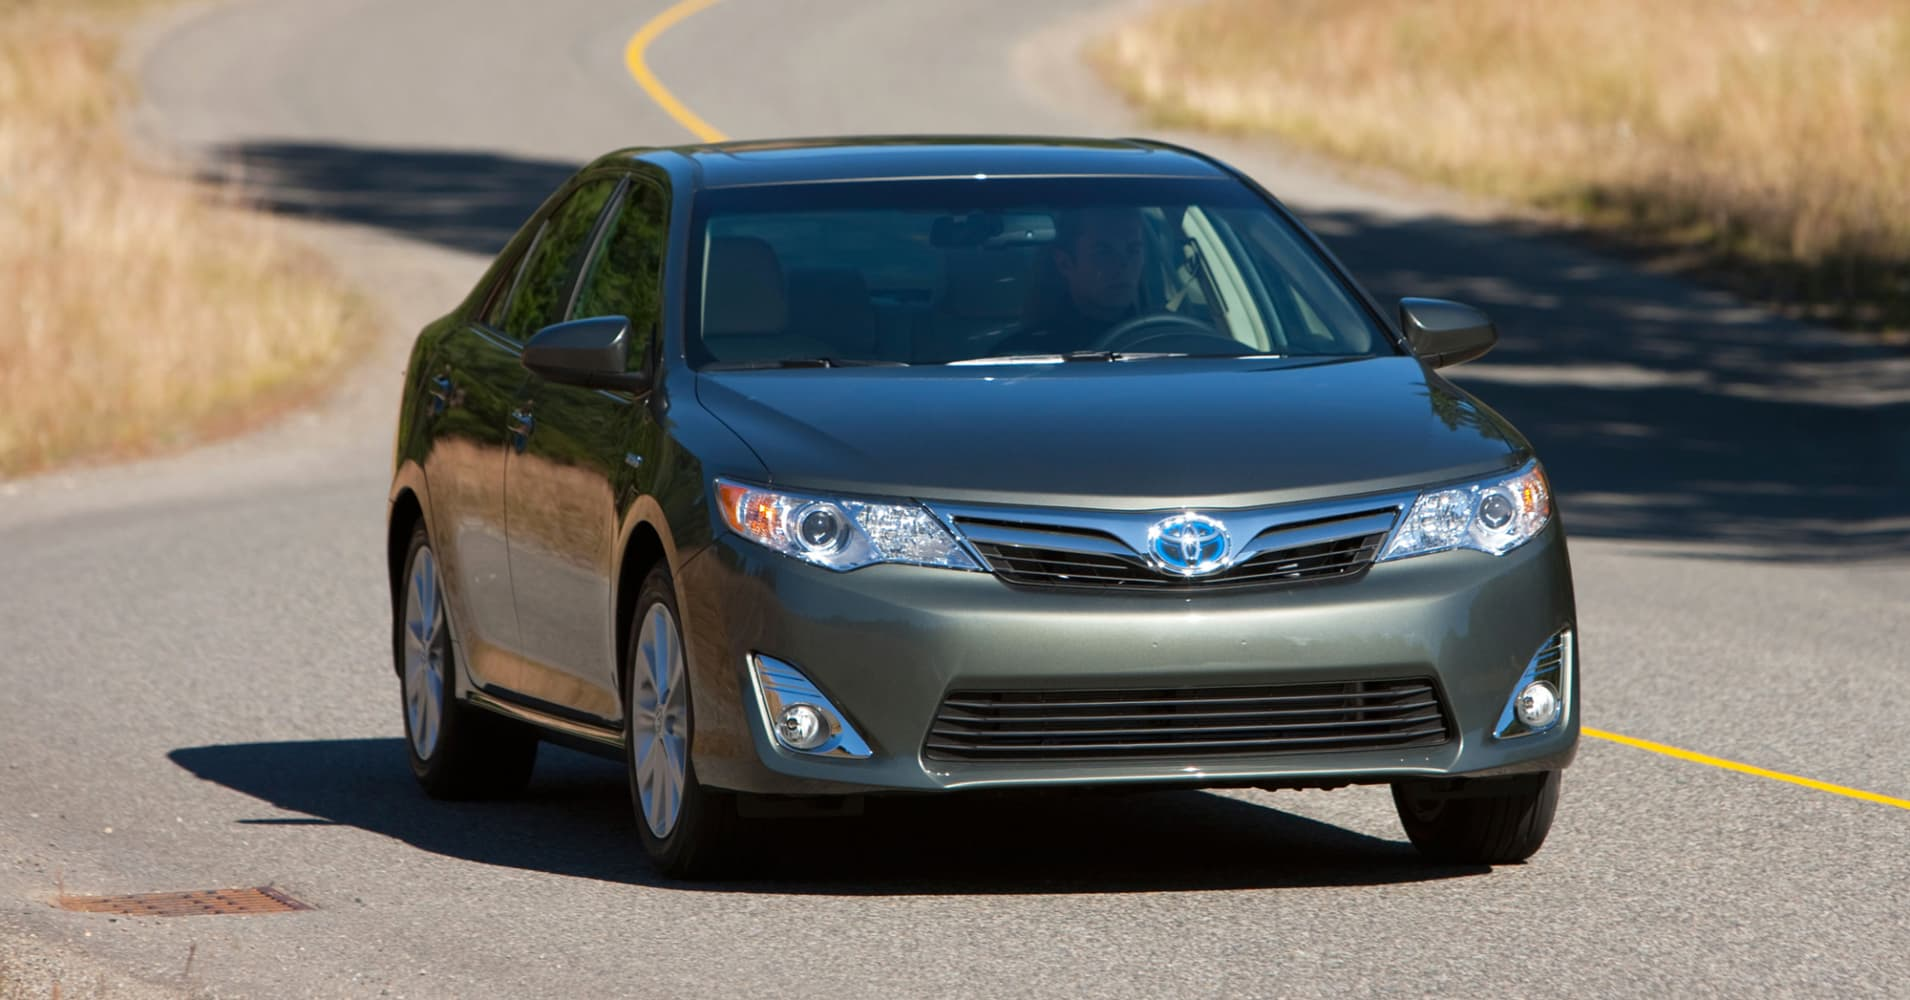 Consumer Reports Best Value Car For 2015 Is